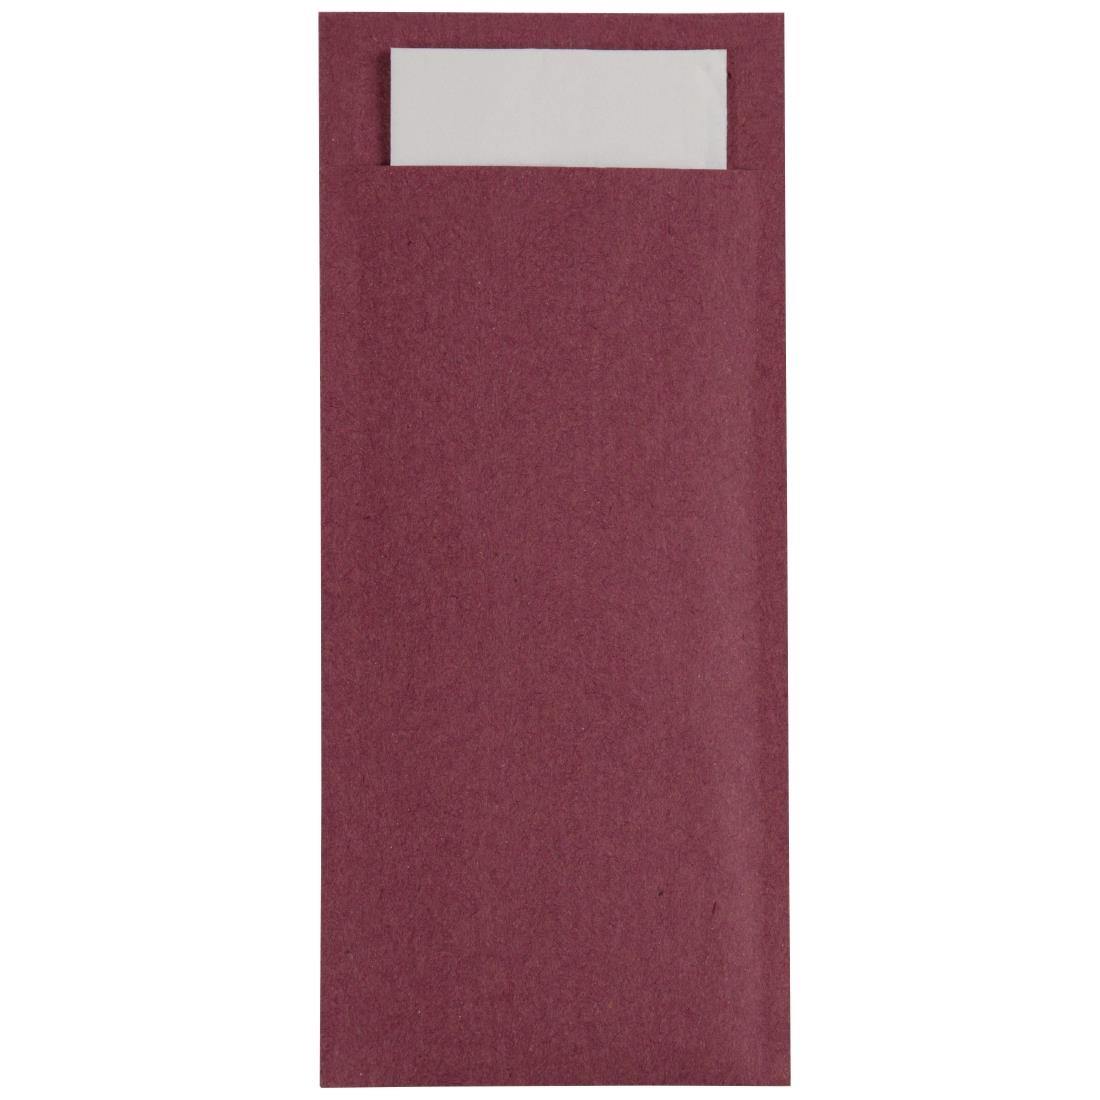 Image of Europochette Kraft Burgundy Cutlery Pouch with Champagne Napkin x 600 Pack of 600